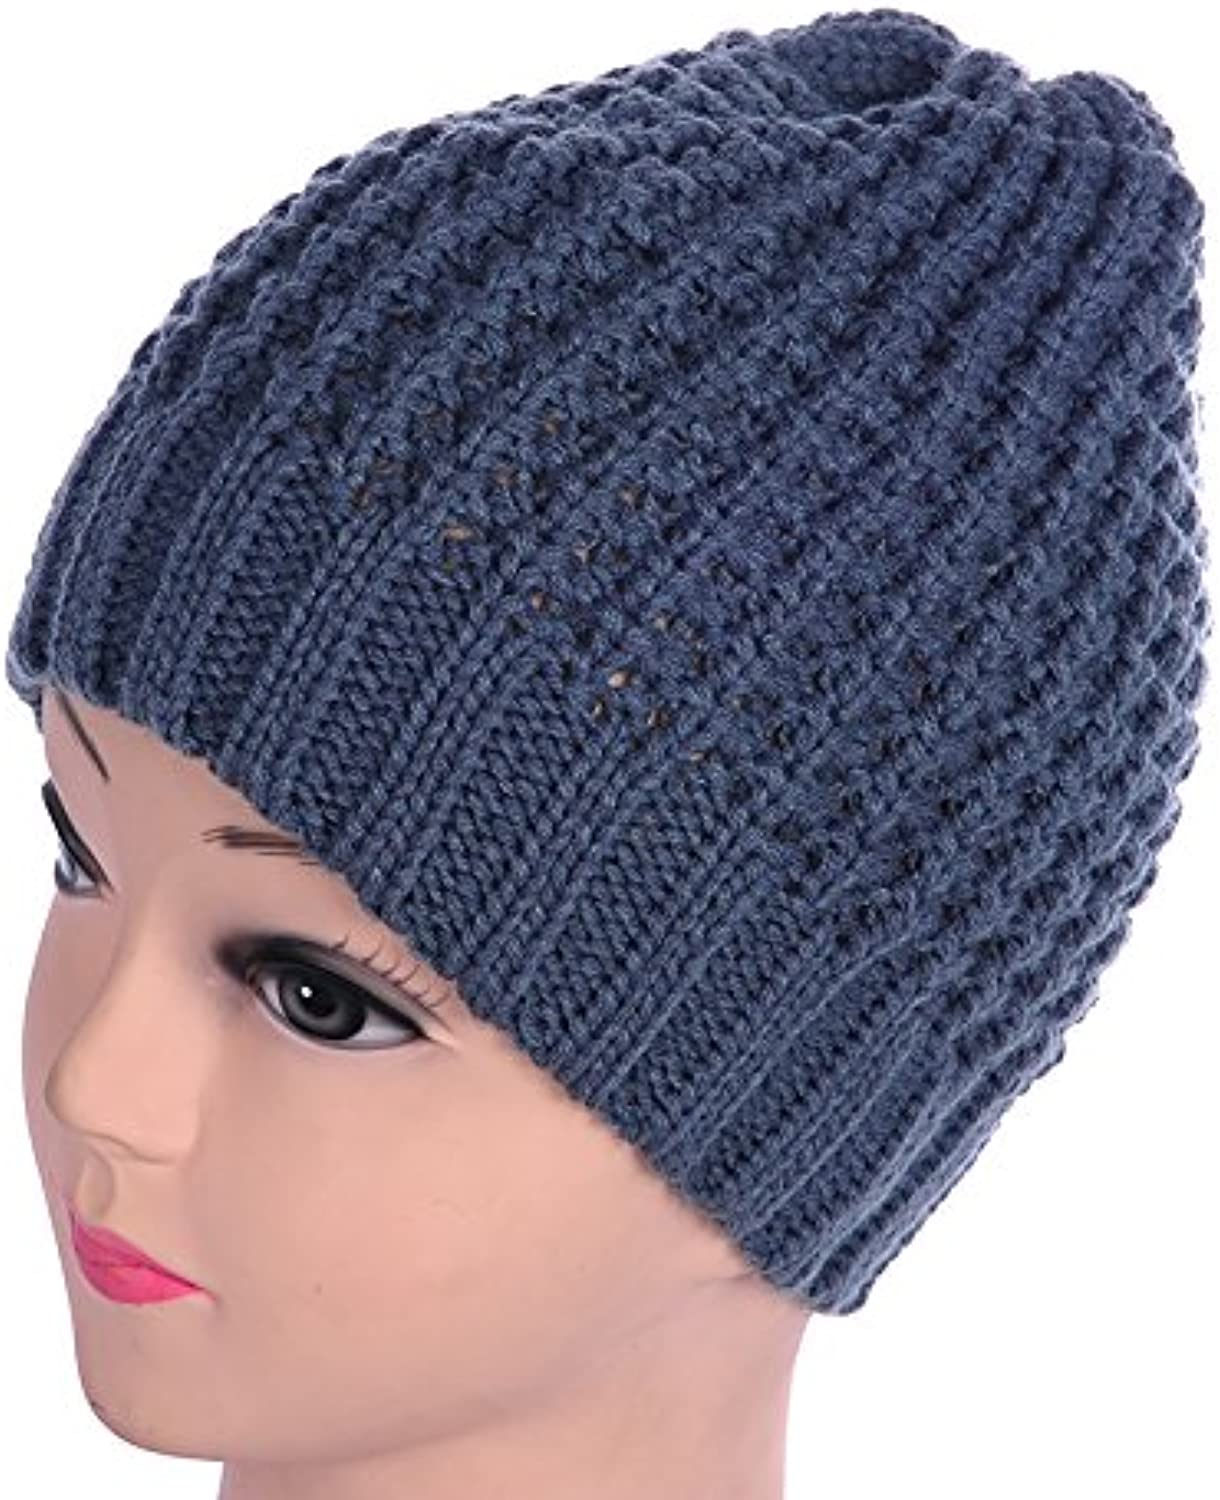 NWEC Autumn and winter lady warm thicker new knitted cap wool cap